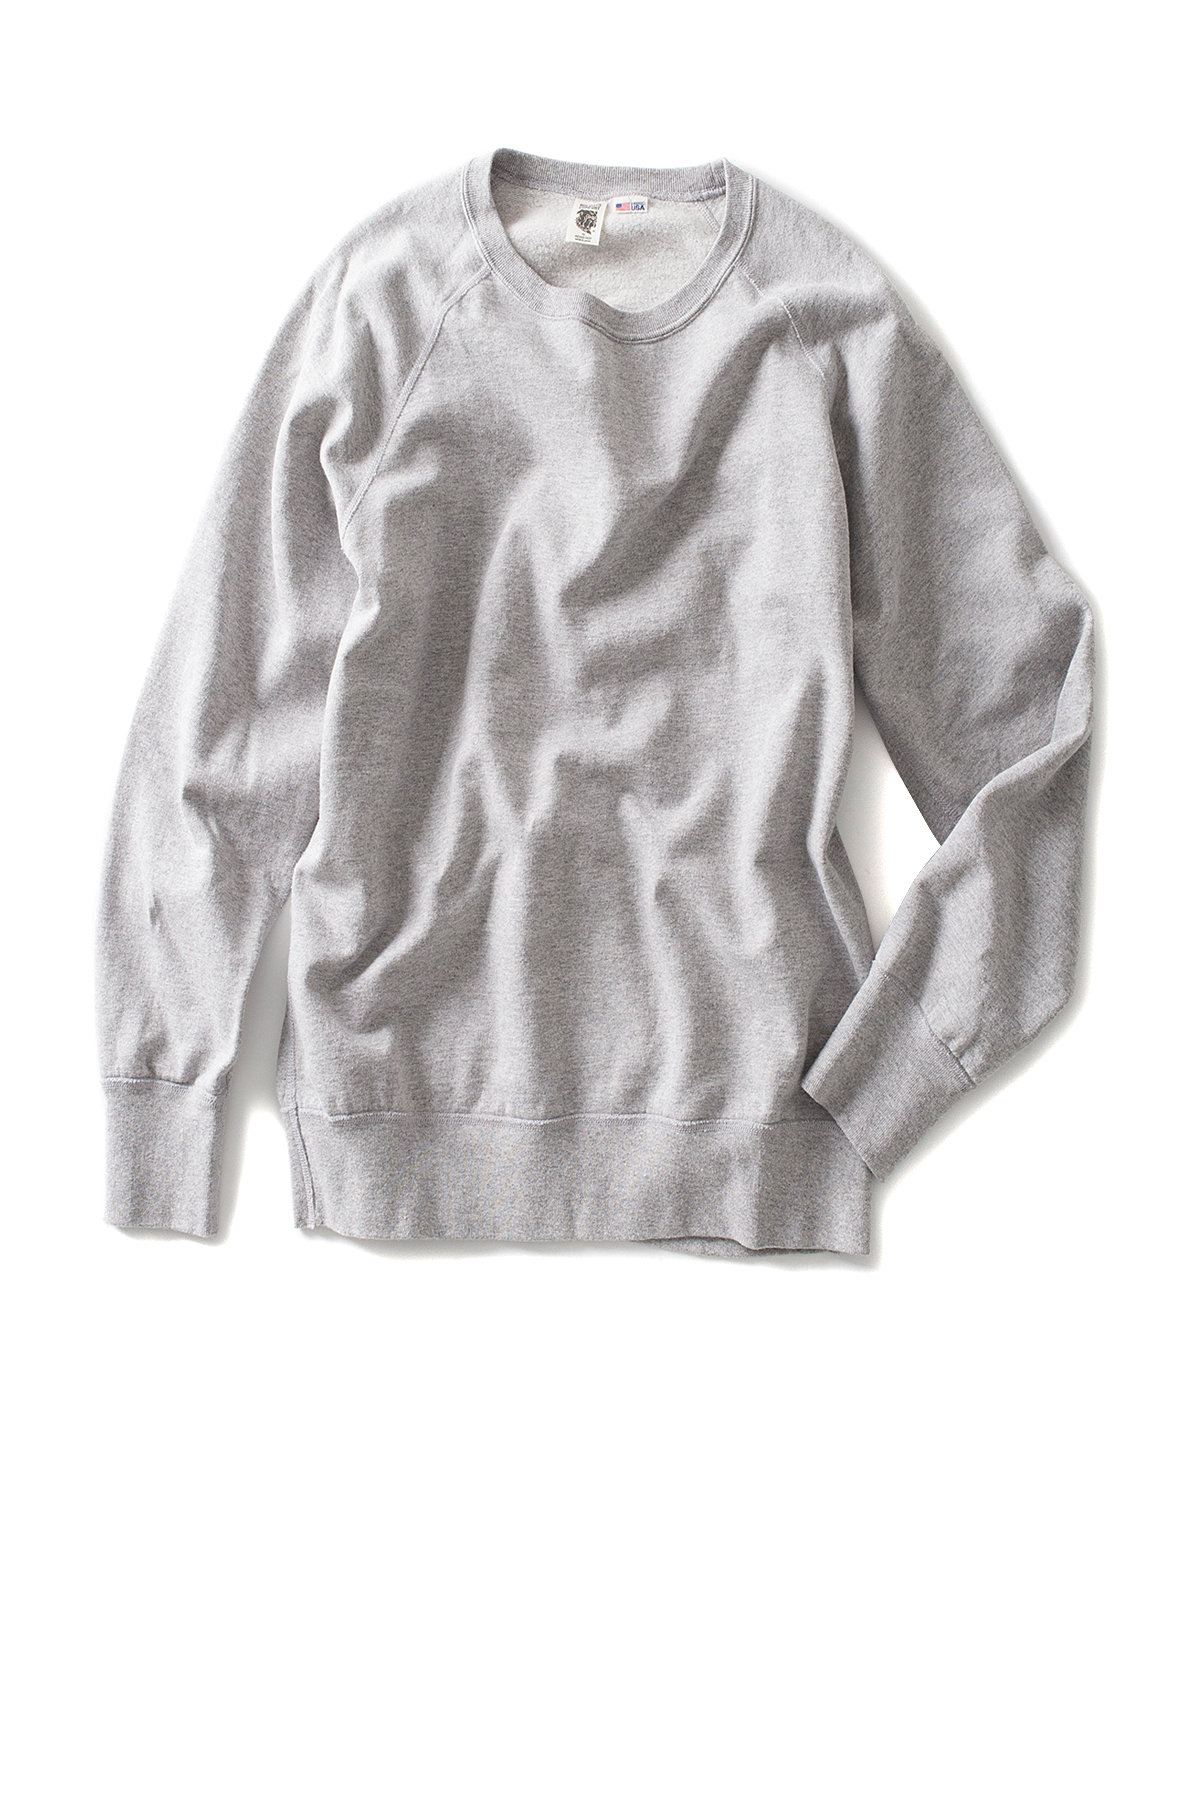 Riding High : 7.5oz USA Fleece Raglan Sweat (Mix Gray)